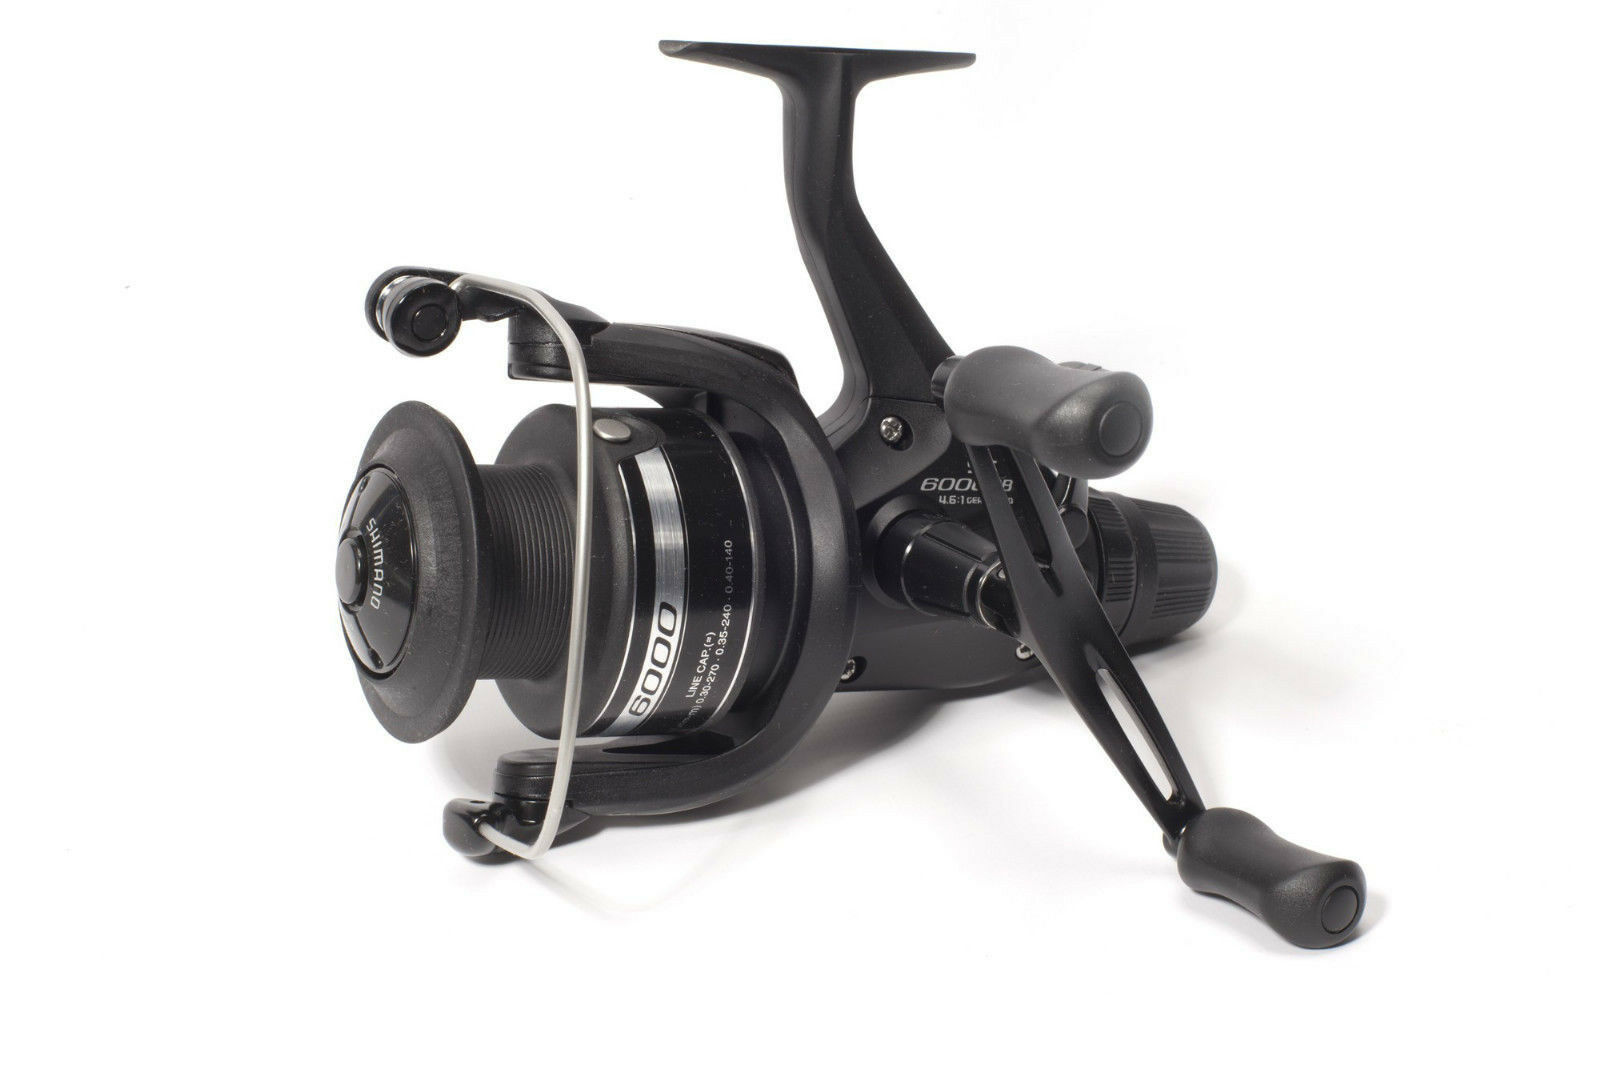 SHIMANO BAITRUNNER ST 6000 10000 RB REAR DRAG MATCH CARP FISHING FREESPOOL REEL